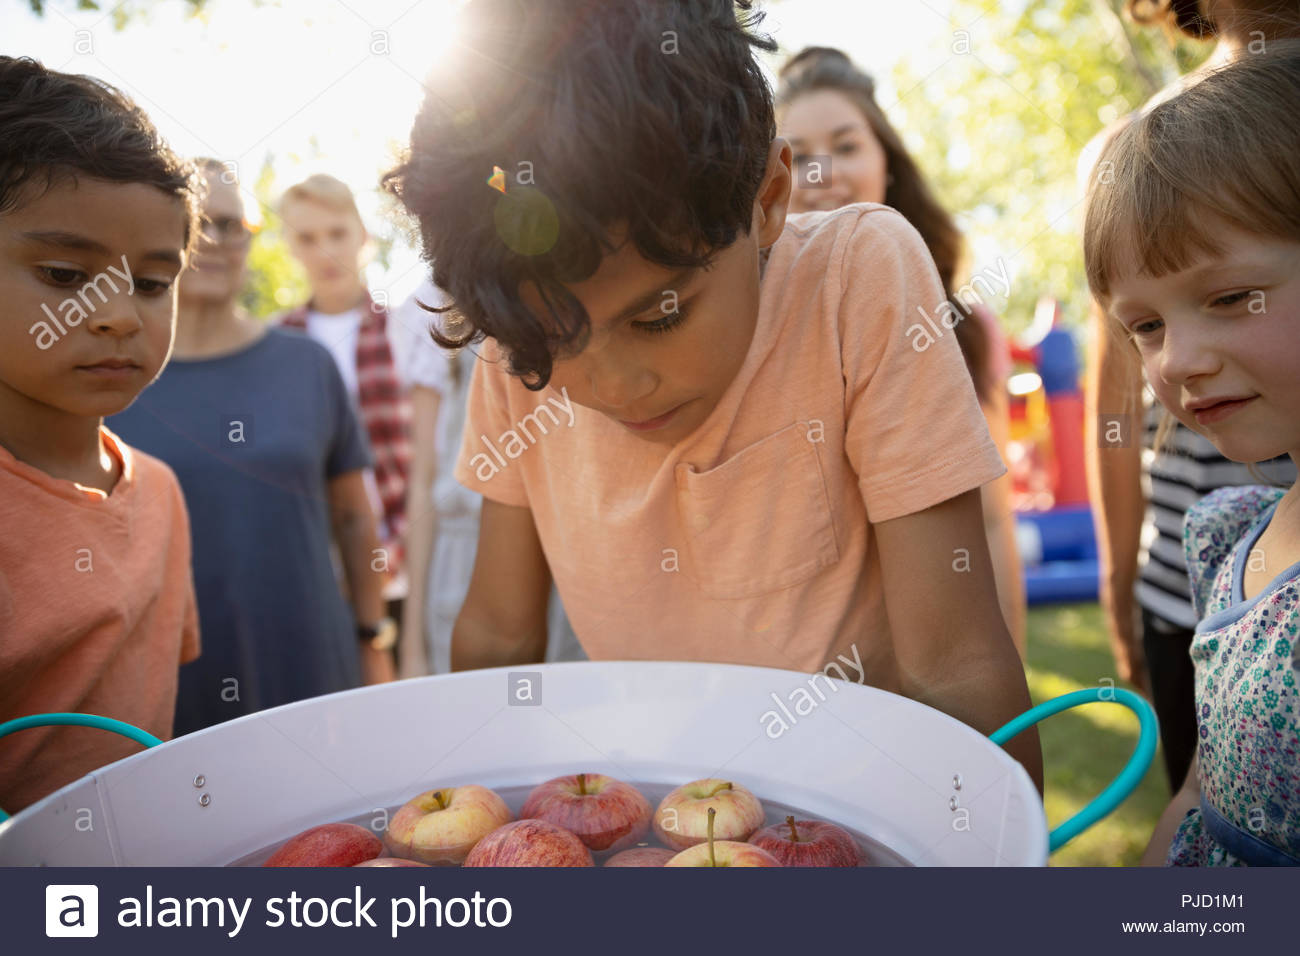 Kids bobbing for apples at summer neighborhood block party in park - Stock Image